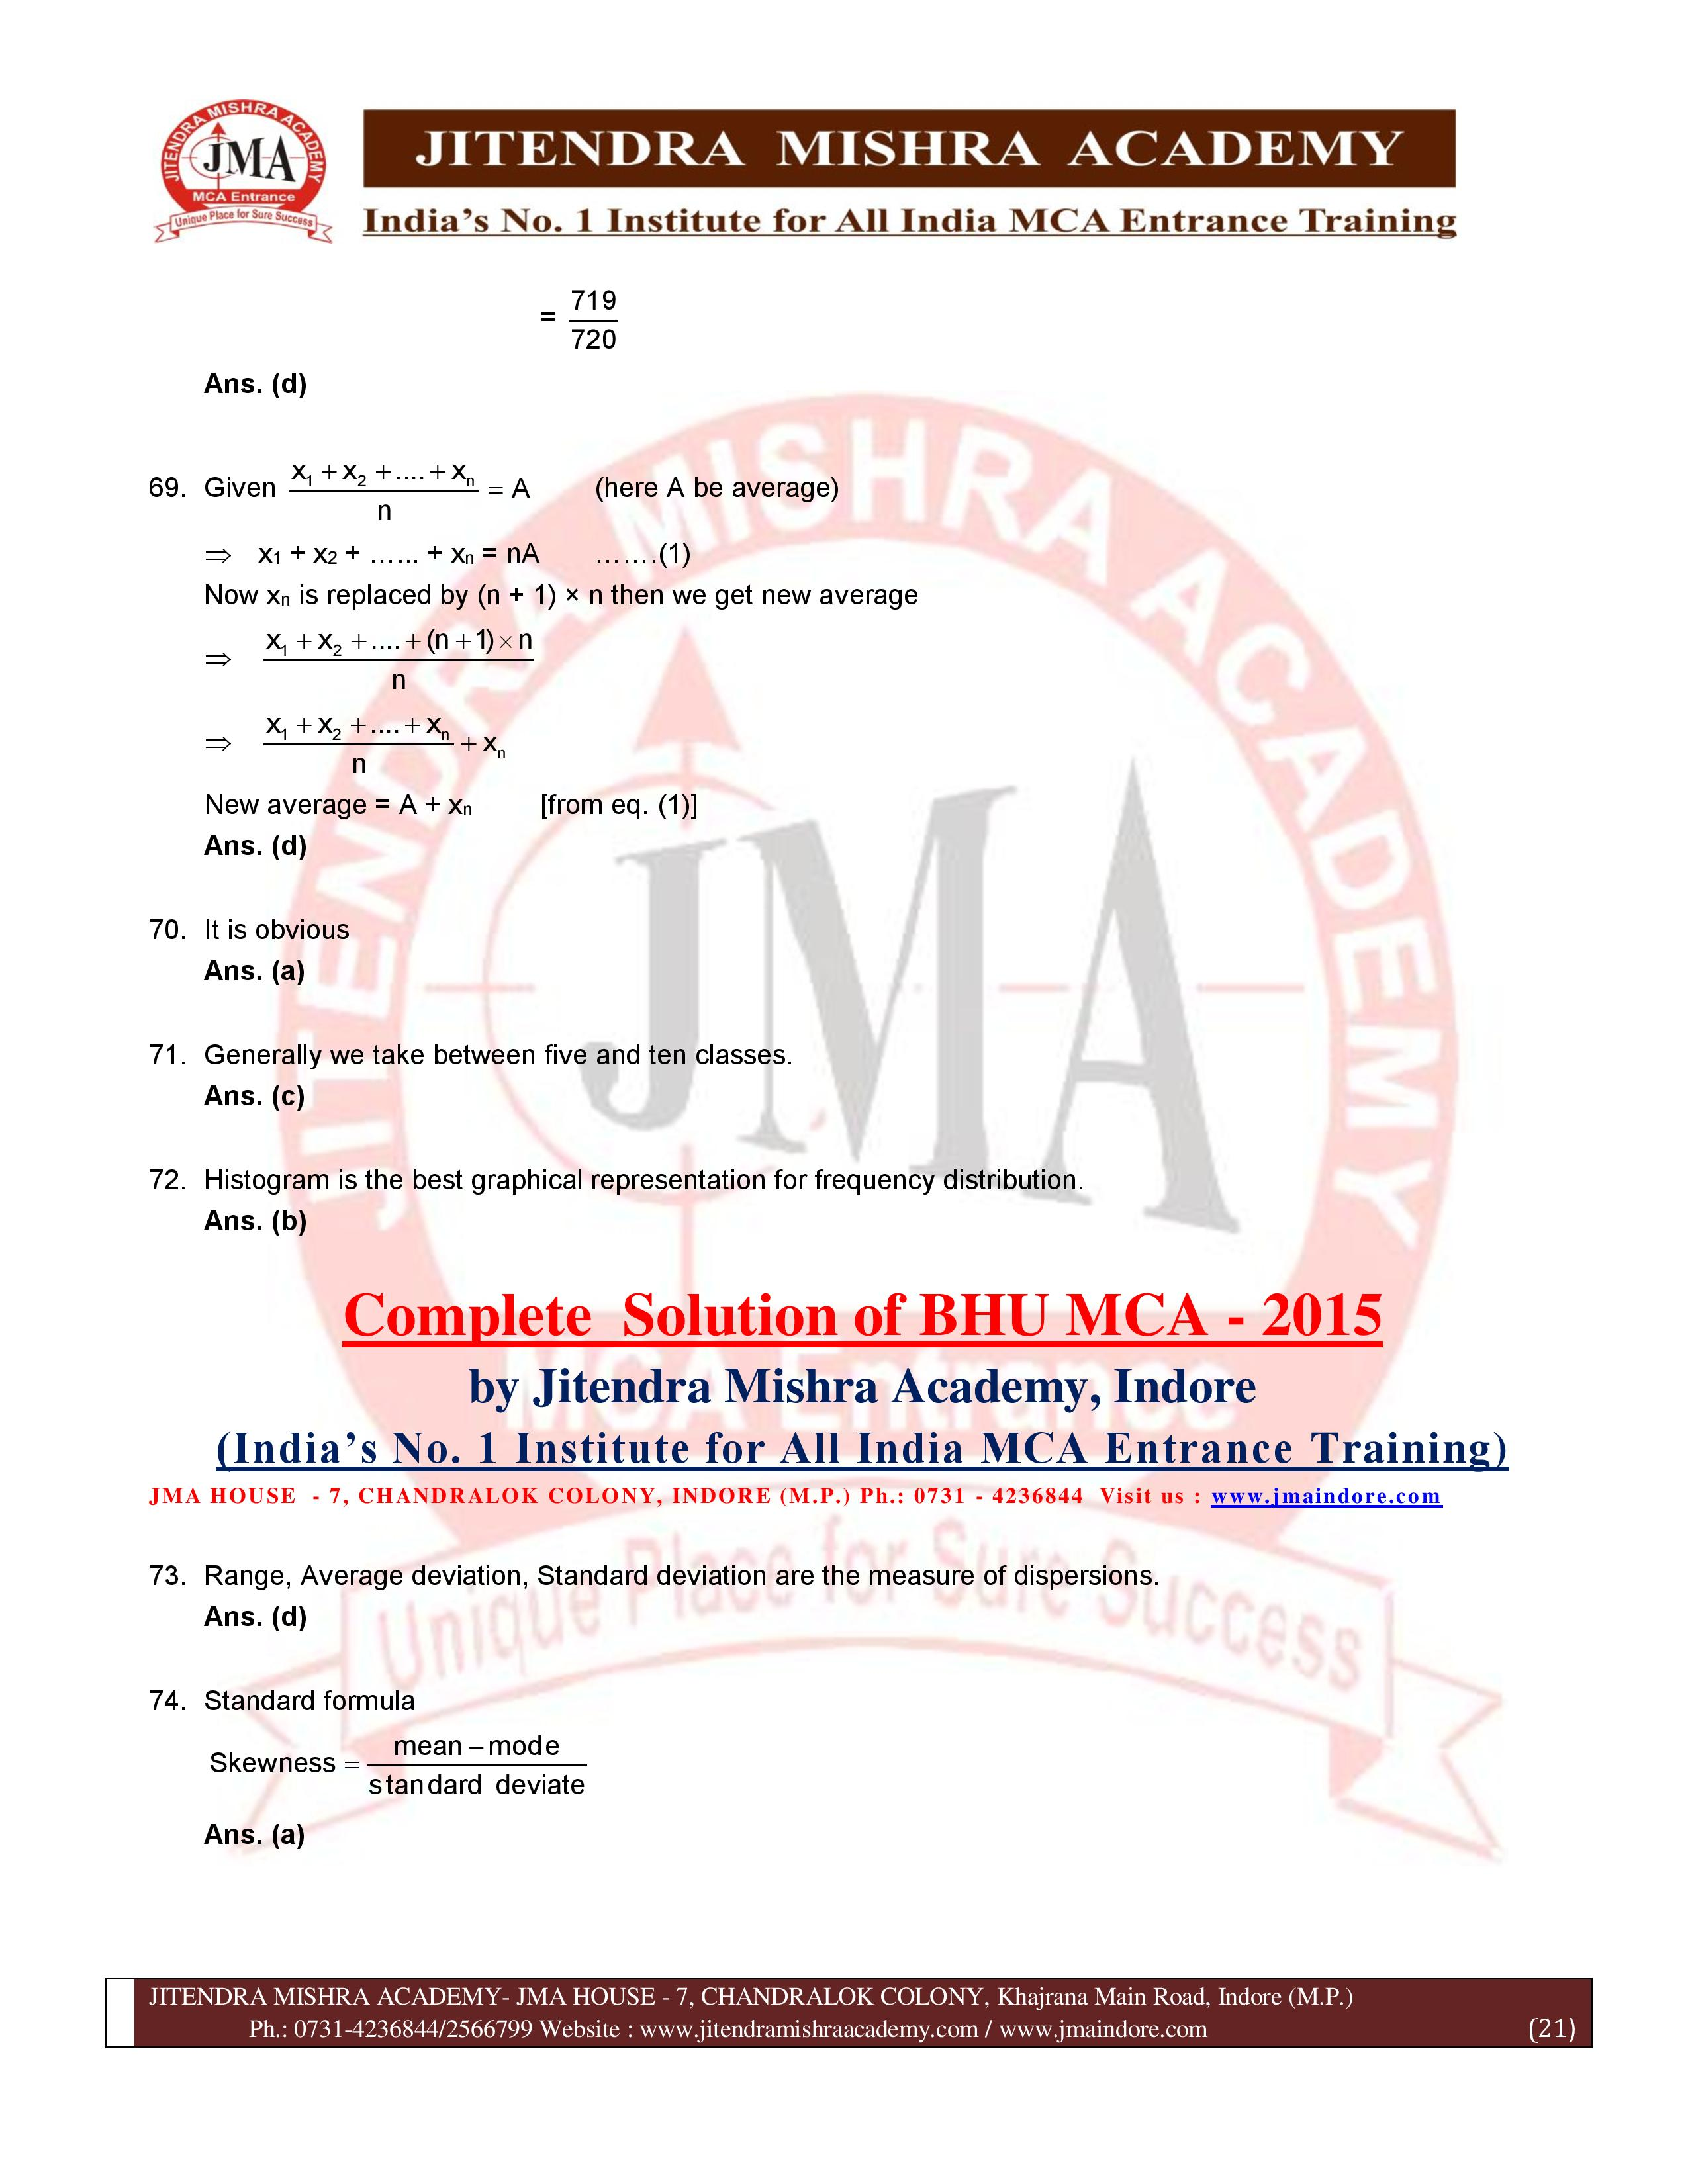 BHU 2015 SOLUTION (SET - 1) (29.06.16)-page-021